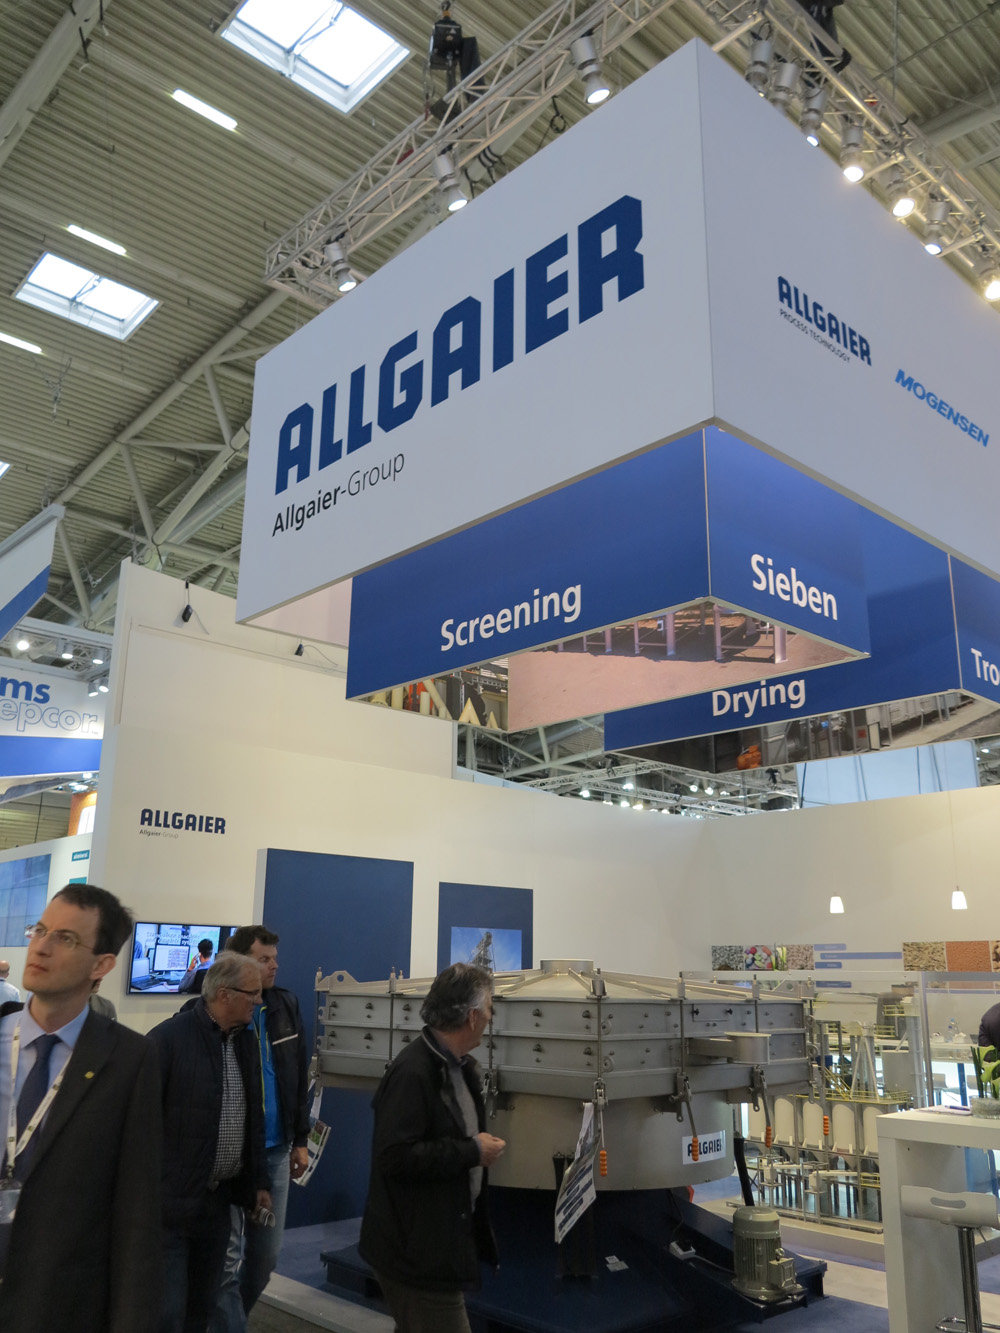 Allgaier Group at bauma 2016 in Munich, Germany